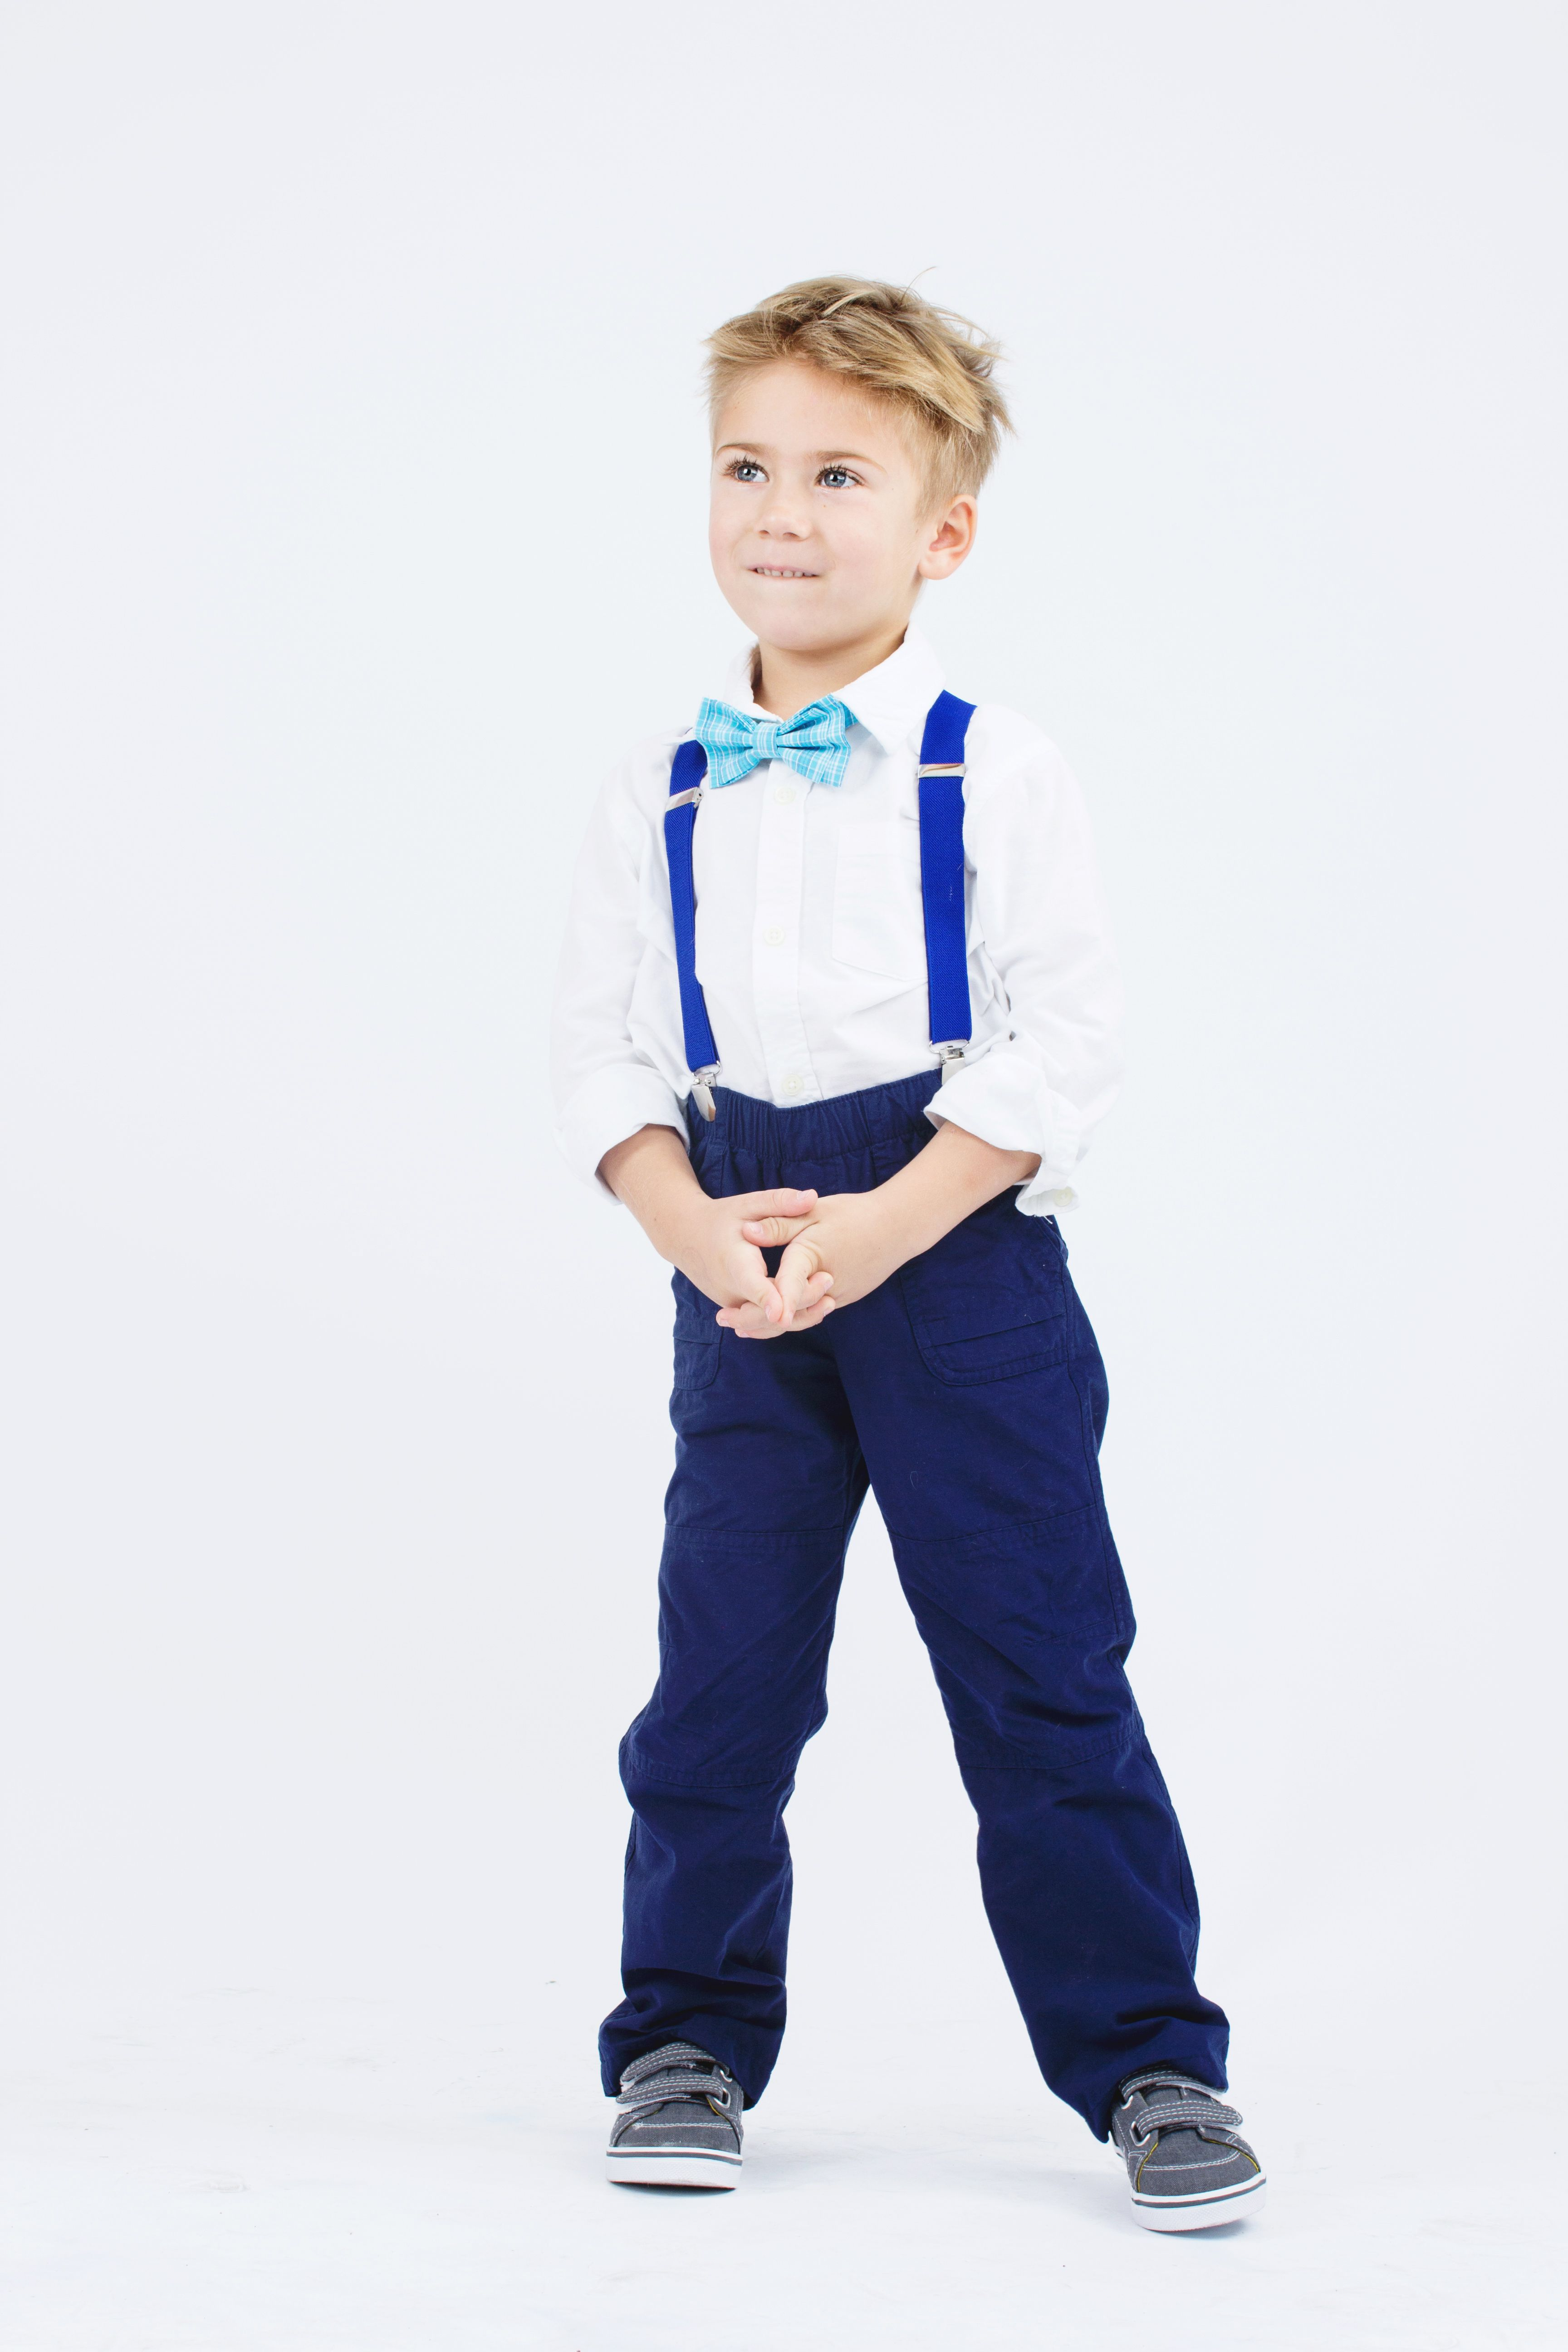 d65bd9d6327e Easter Outfit Ideas for Baby | Toddler | Boy - Sky Blue Bow Tie & Royal Blue  Suspenders #easter #outfits #boy #babyboy #toddler #blue #suspenders #bowtie